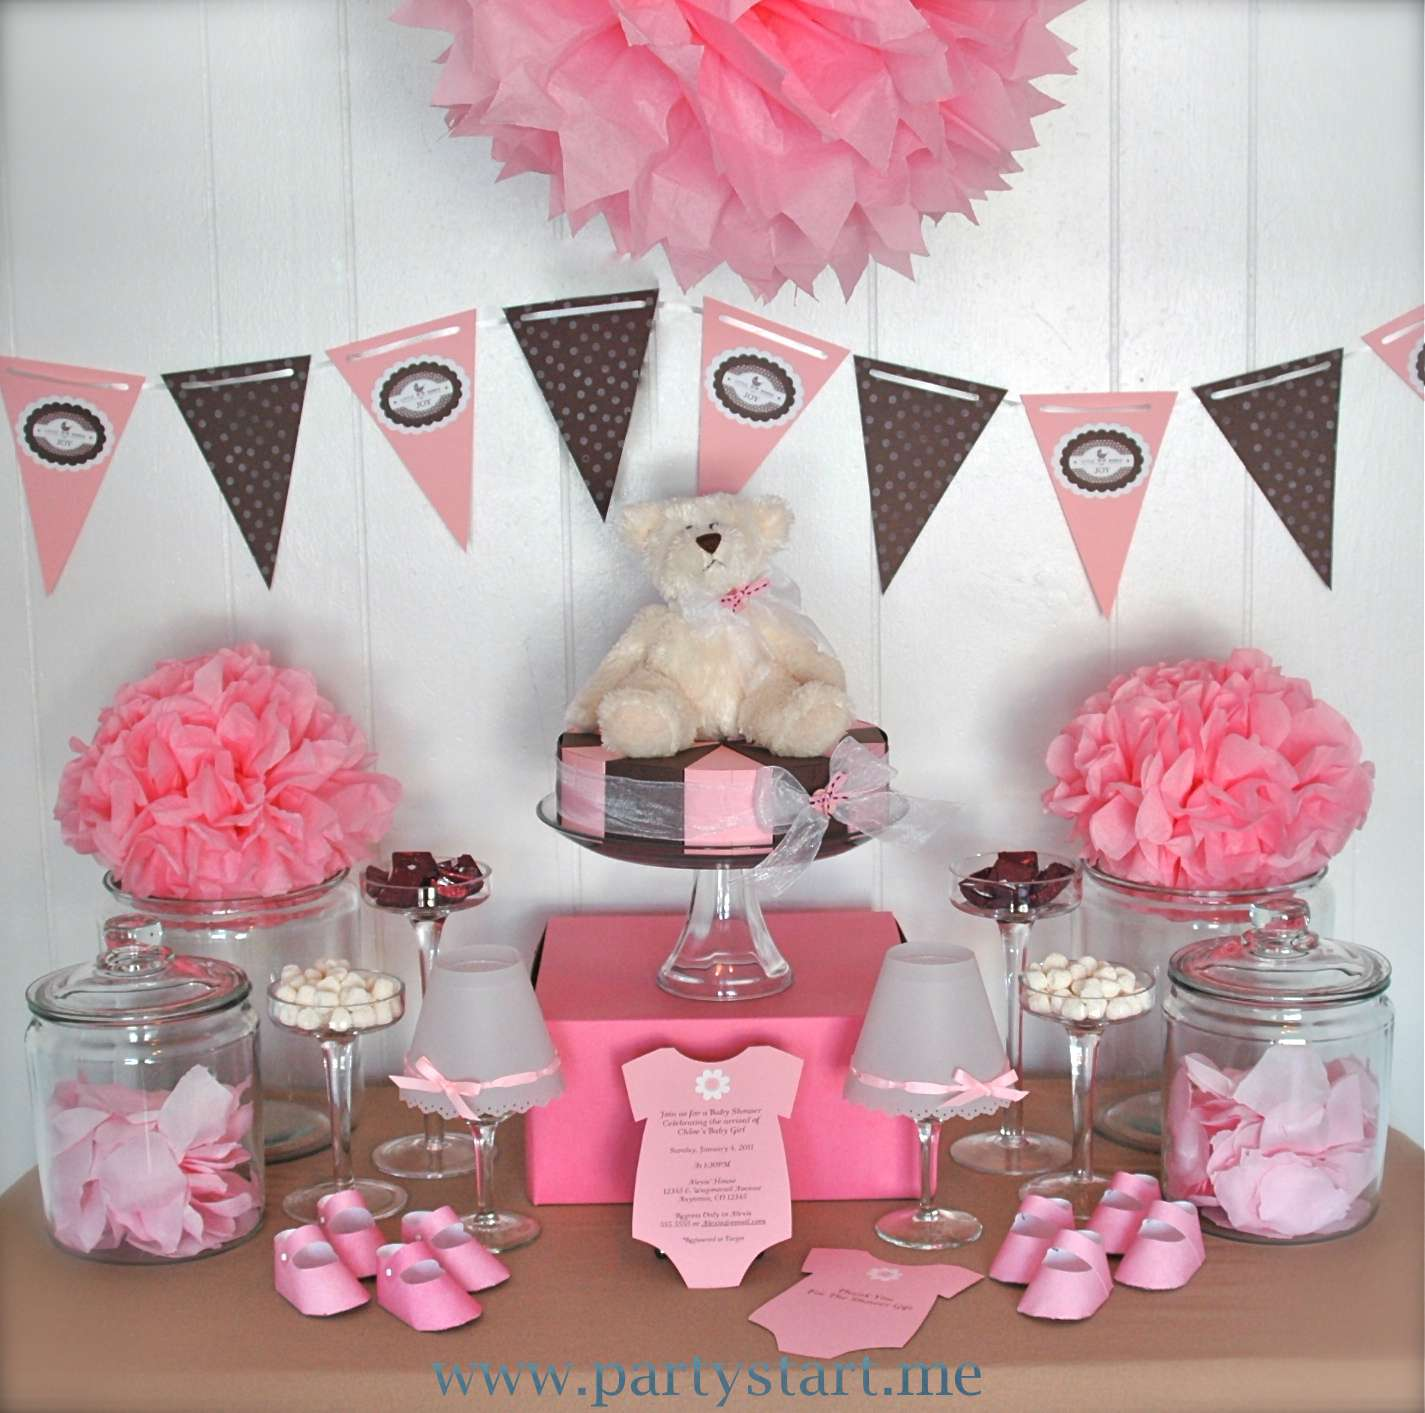 The baby shower fiestas ideas para que el baby shower sea for Baby shower dekoration